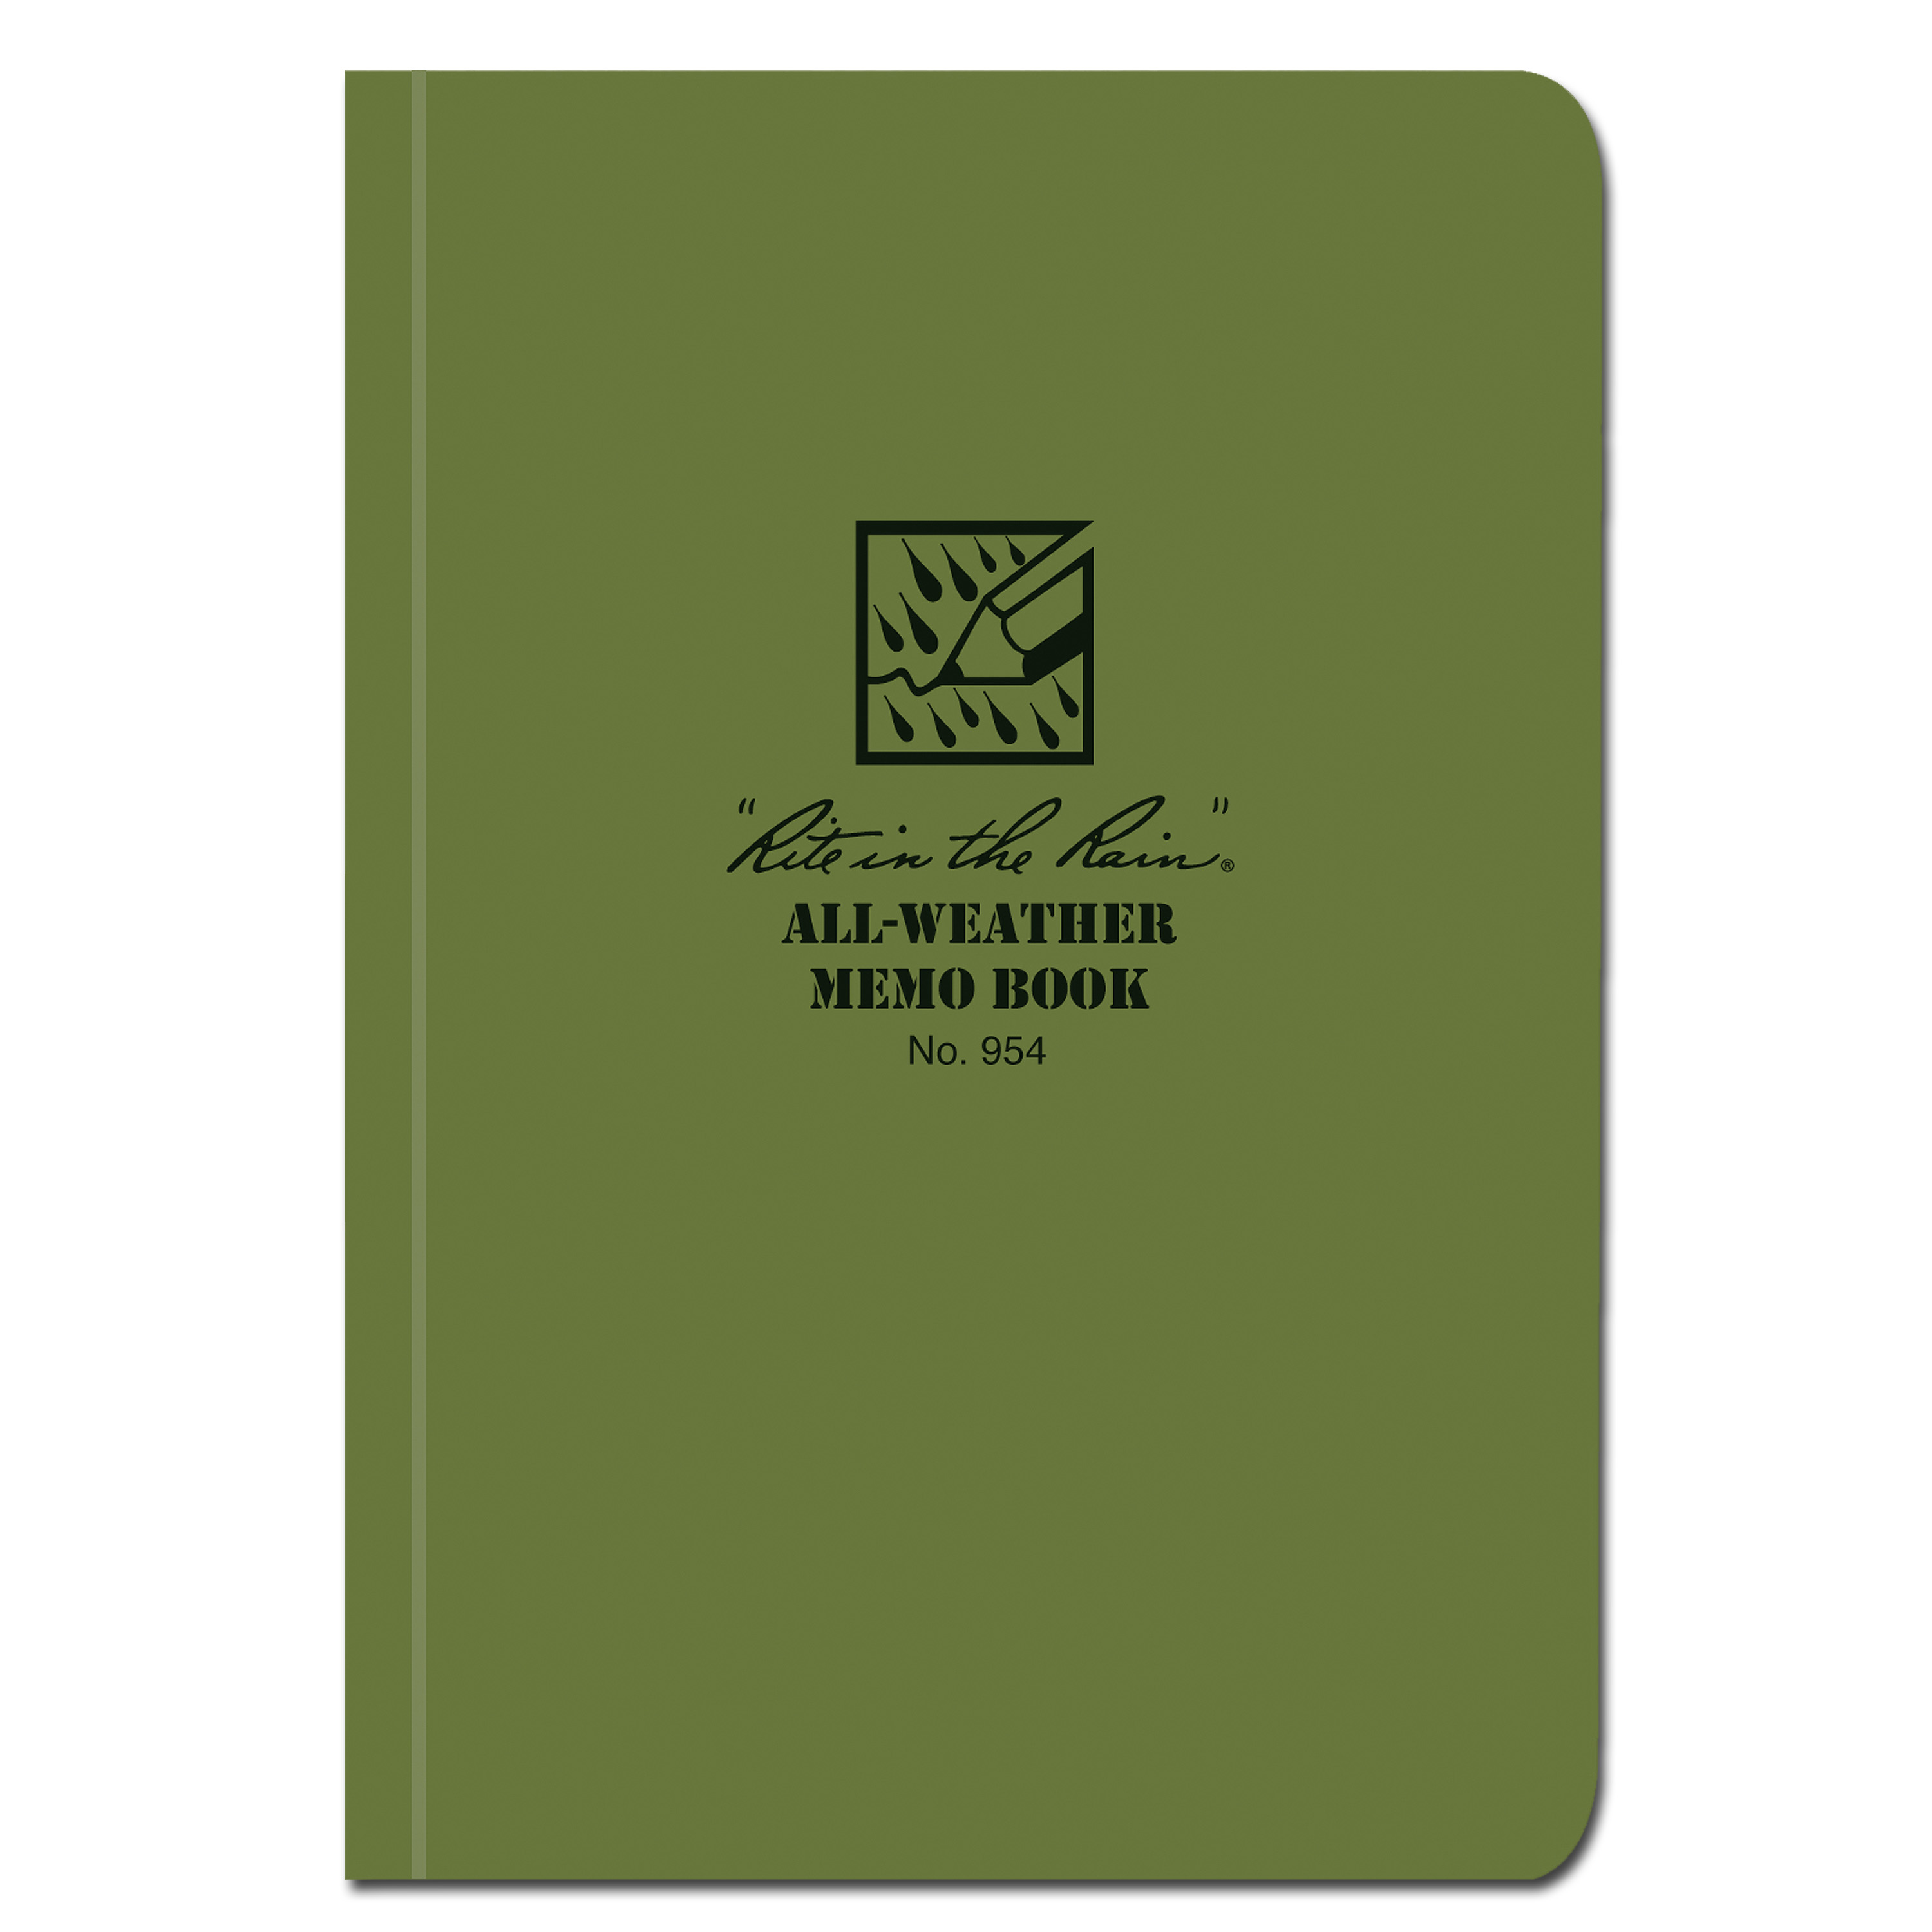 Rite in the Rain Tactical Memo Book oliv 954